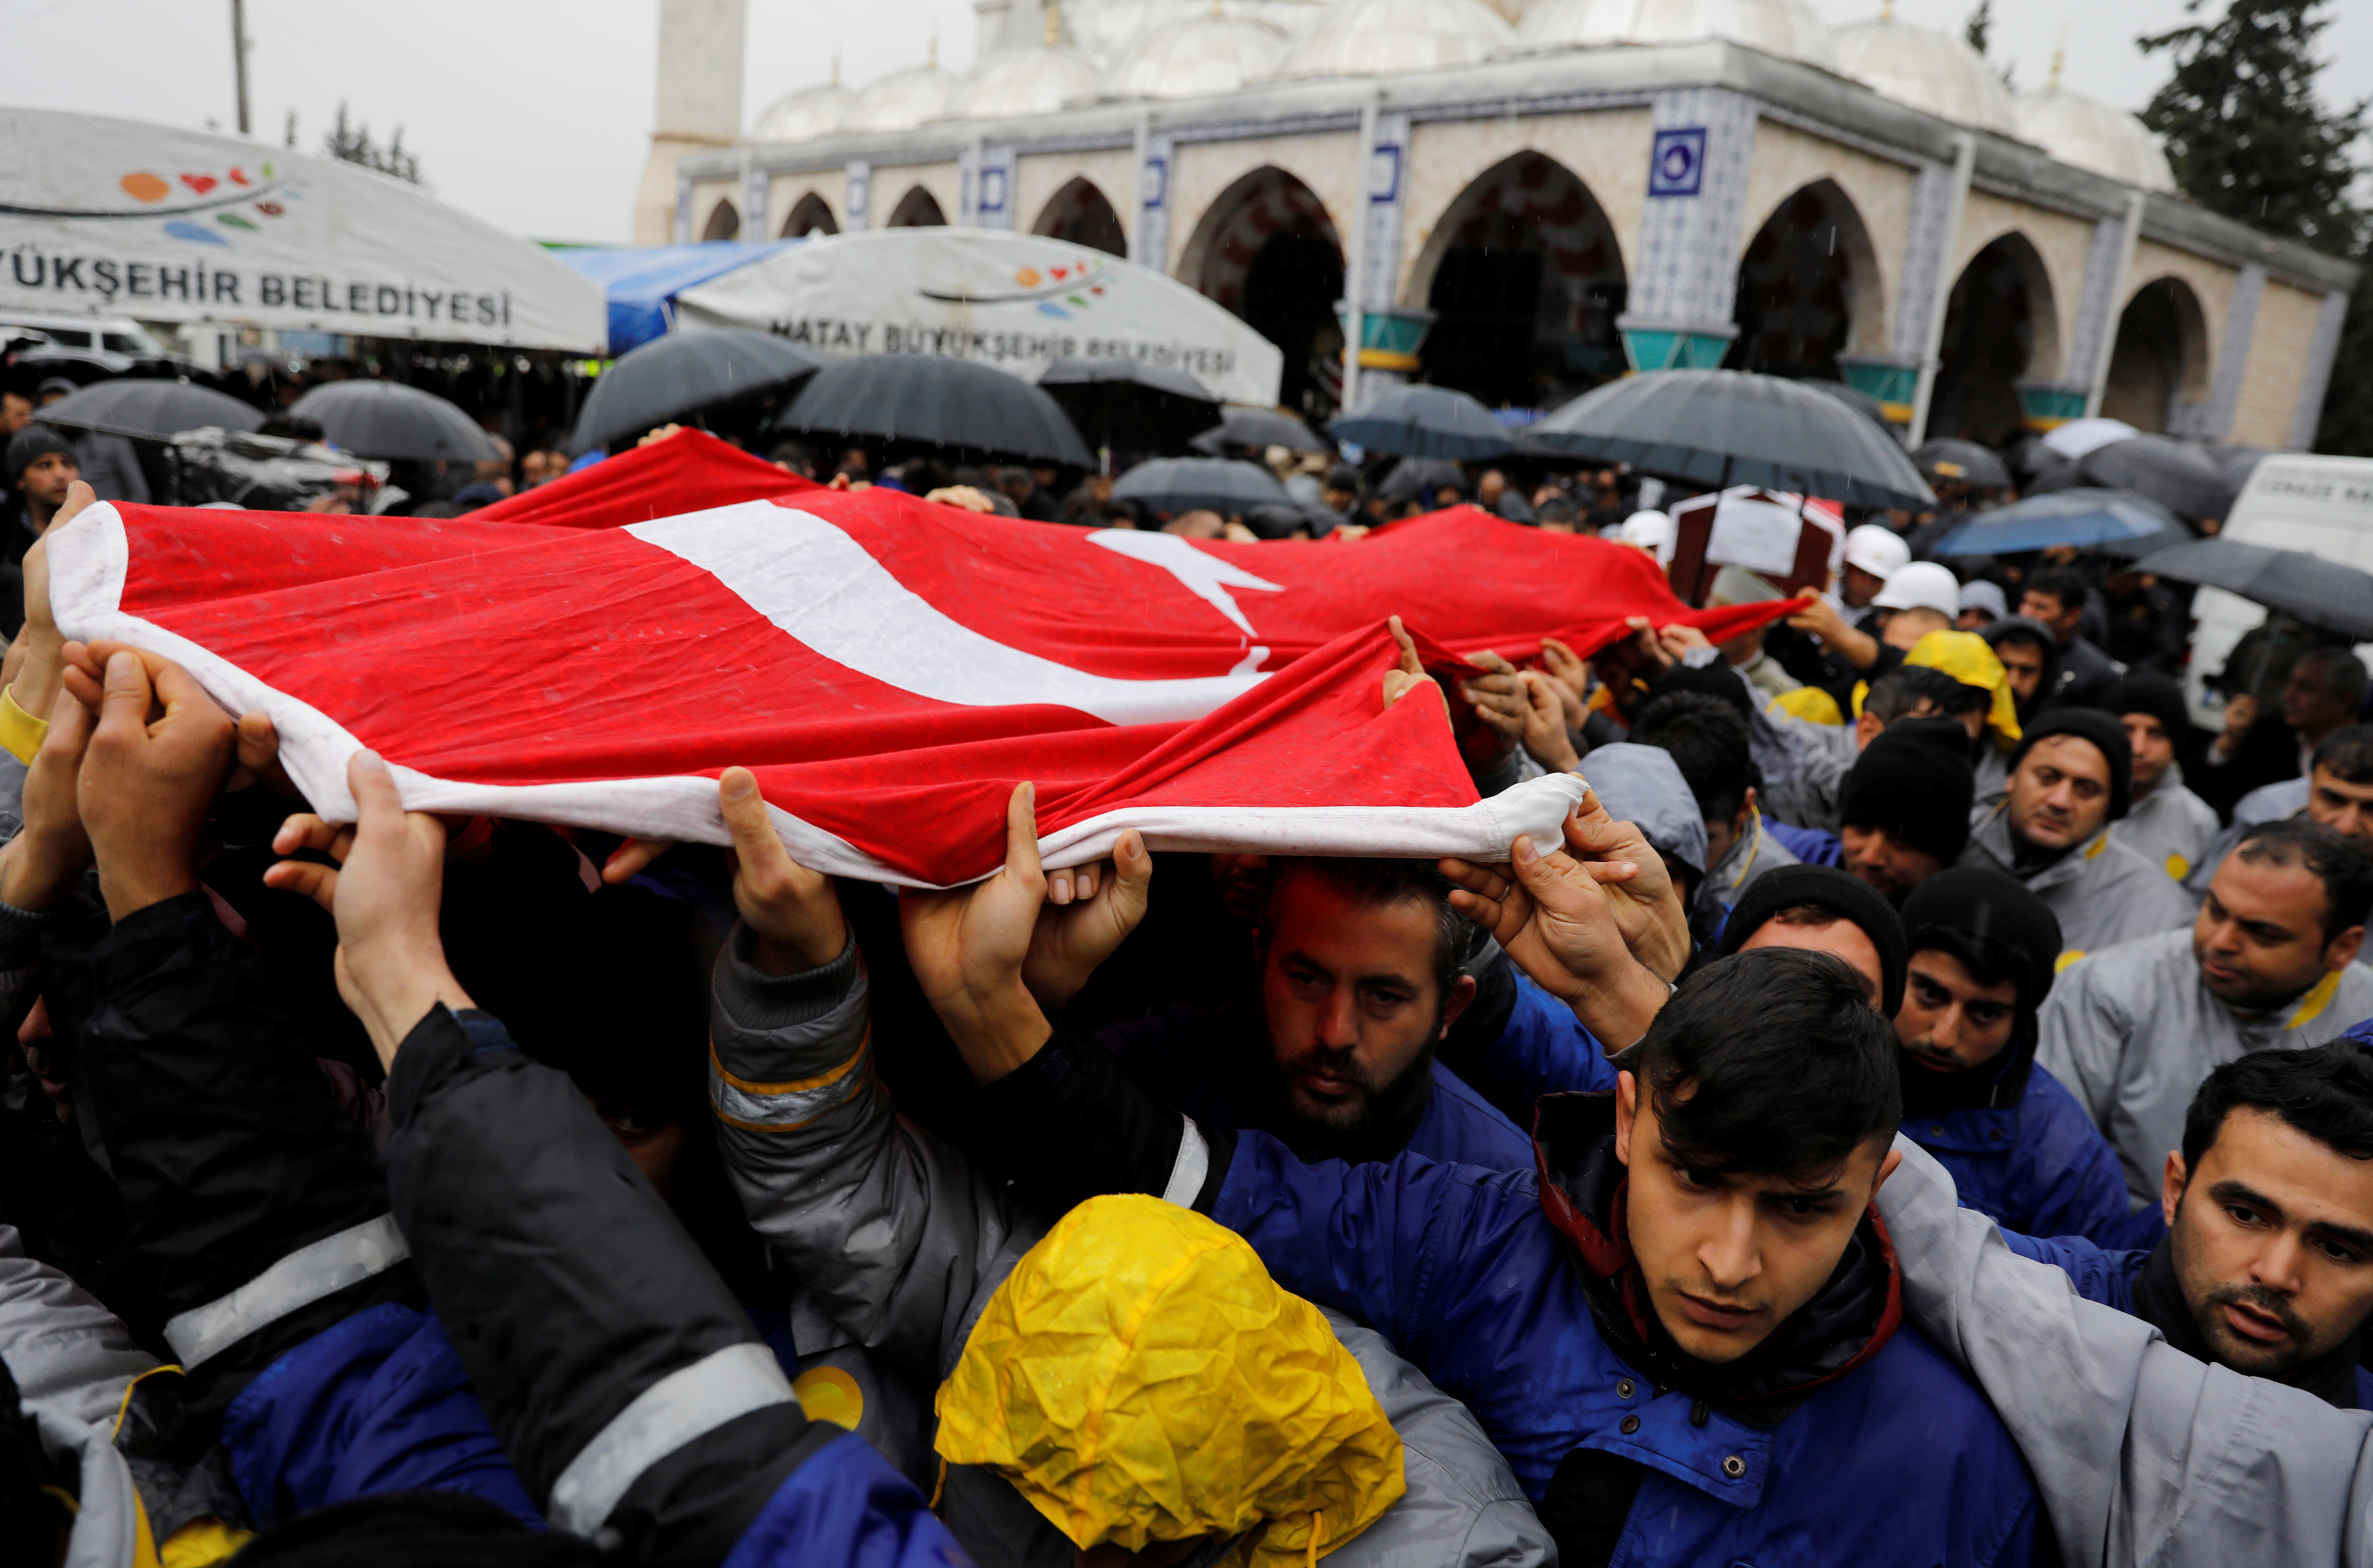 Relatives and friends of Sahin Elitas, a civilian who was killed in a rocket attack fired by Syria, carry a Turkish flag during his funeral ceremony in the town of Kirikhan in Hatay province, Turkey January 23, 2018.